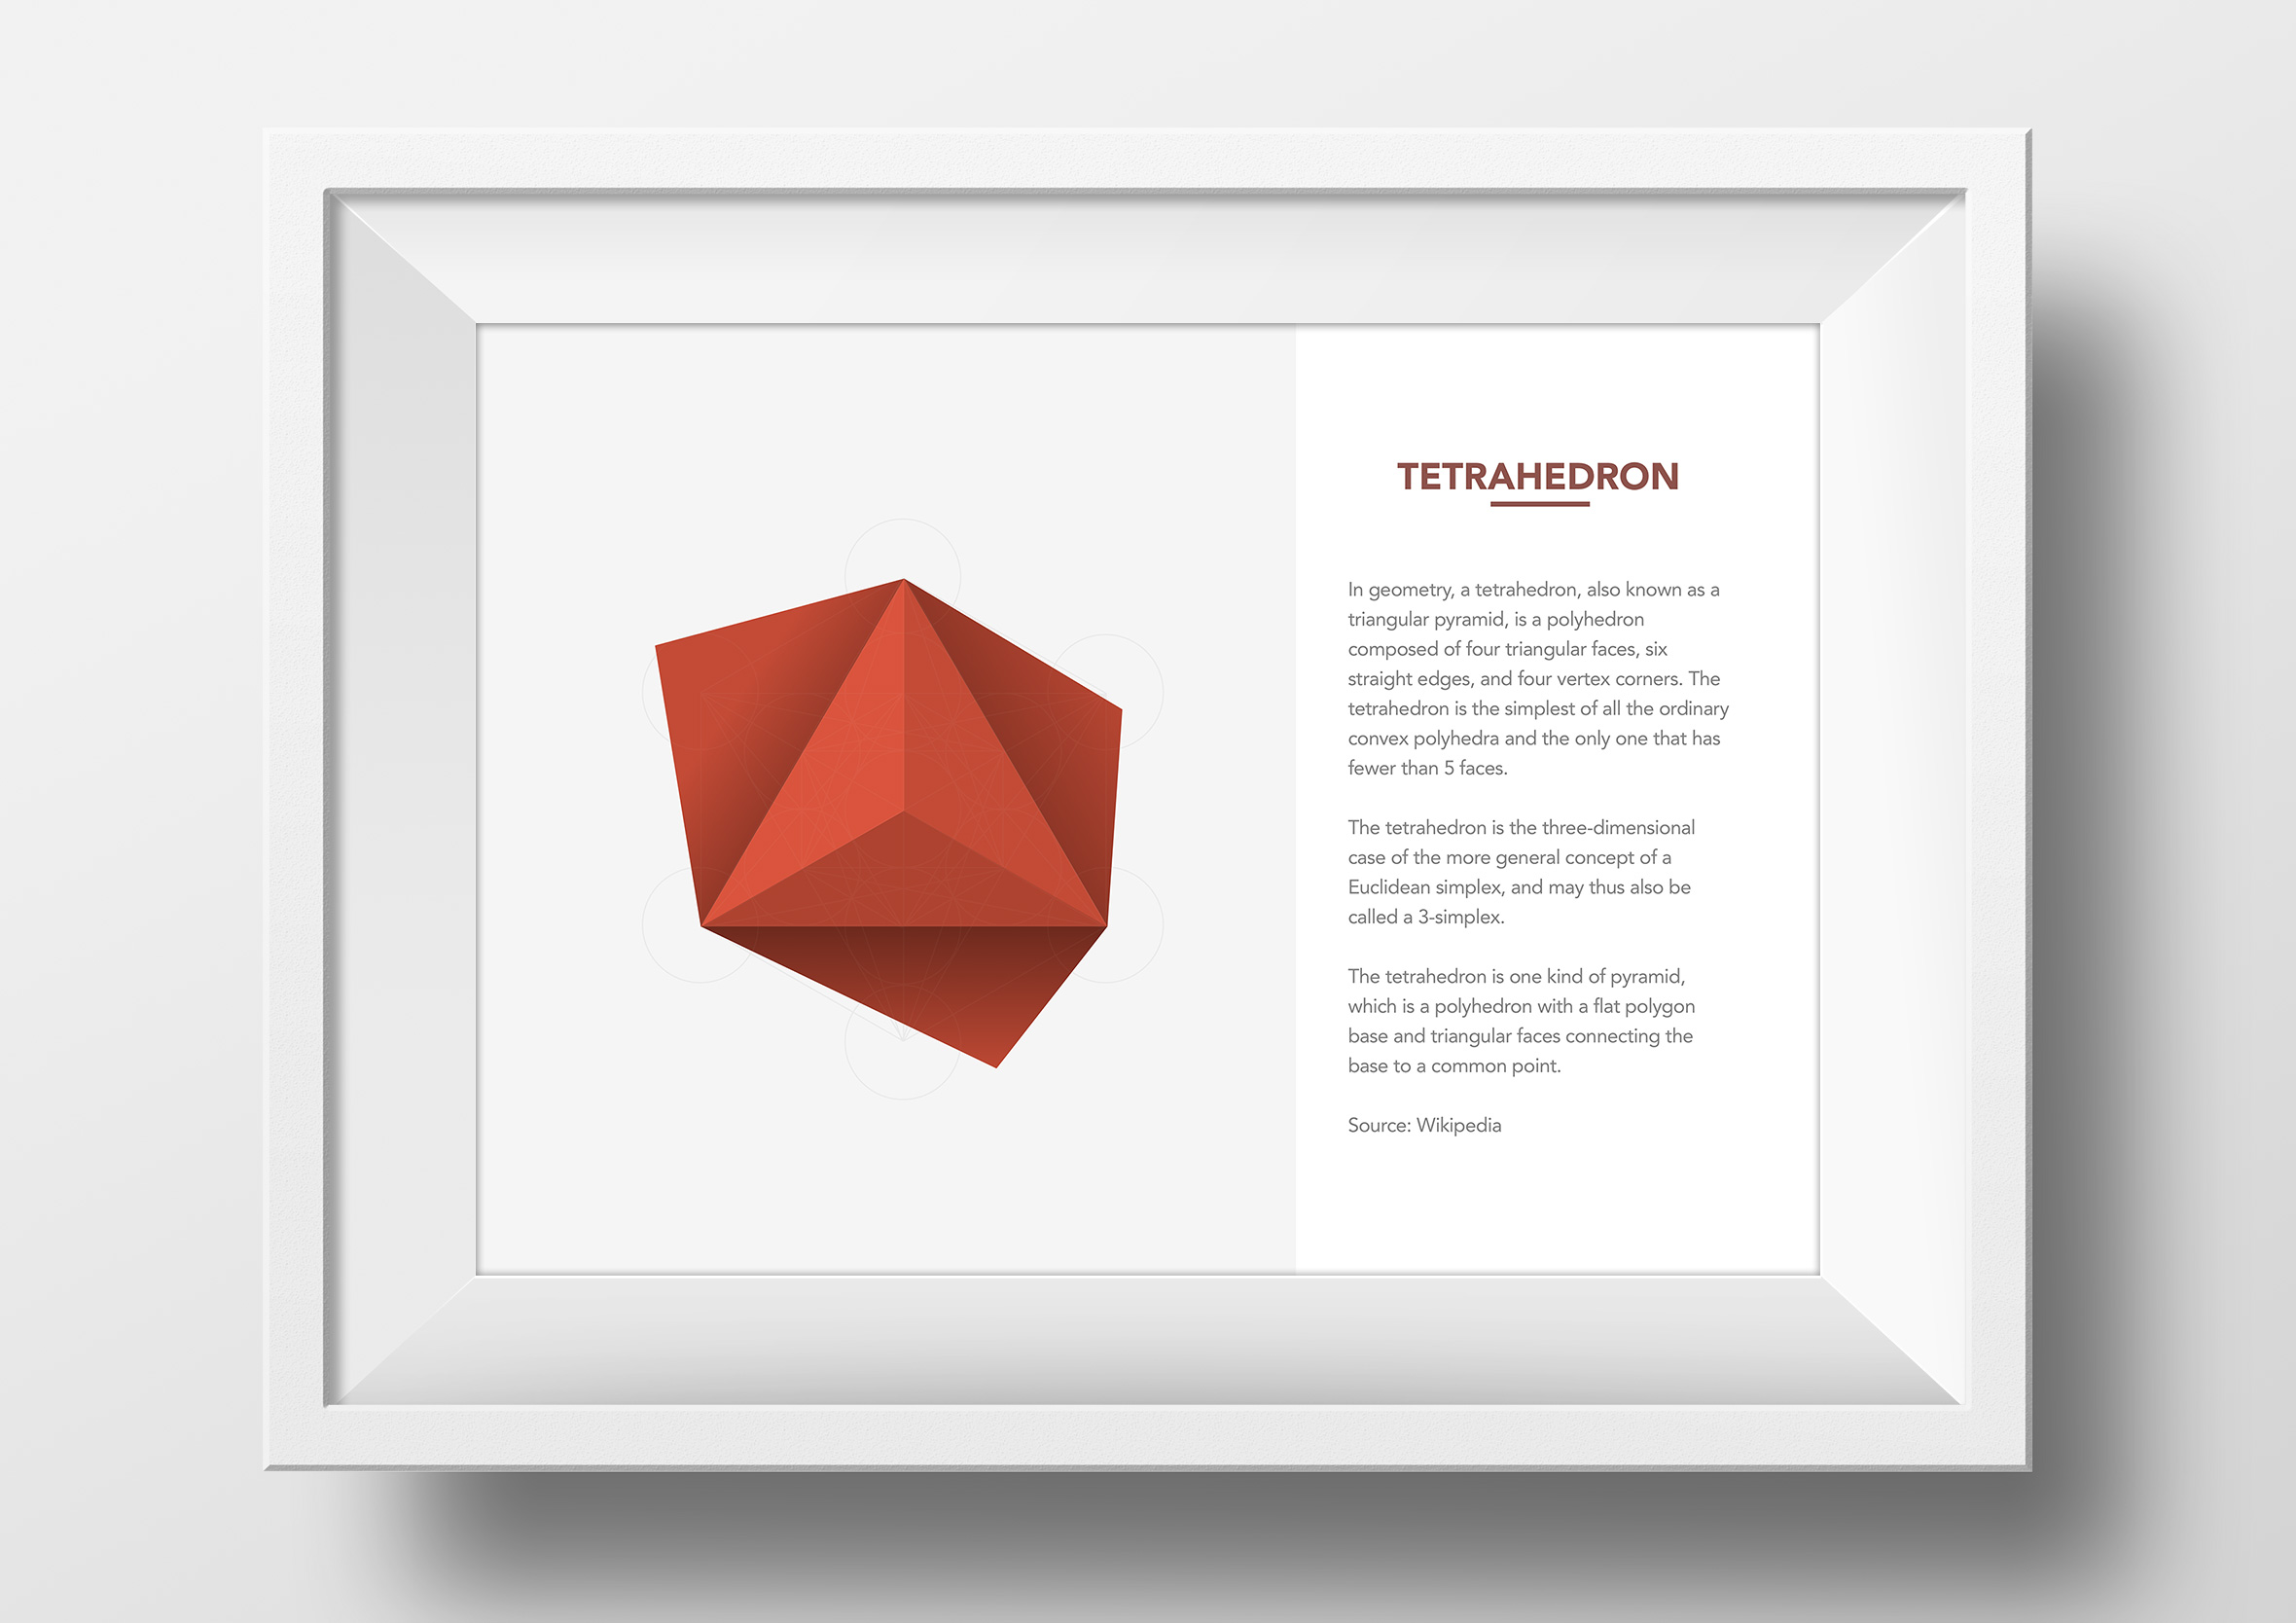 metatrons cube origami app single framed print tetrahedron